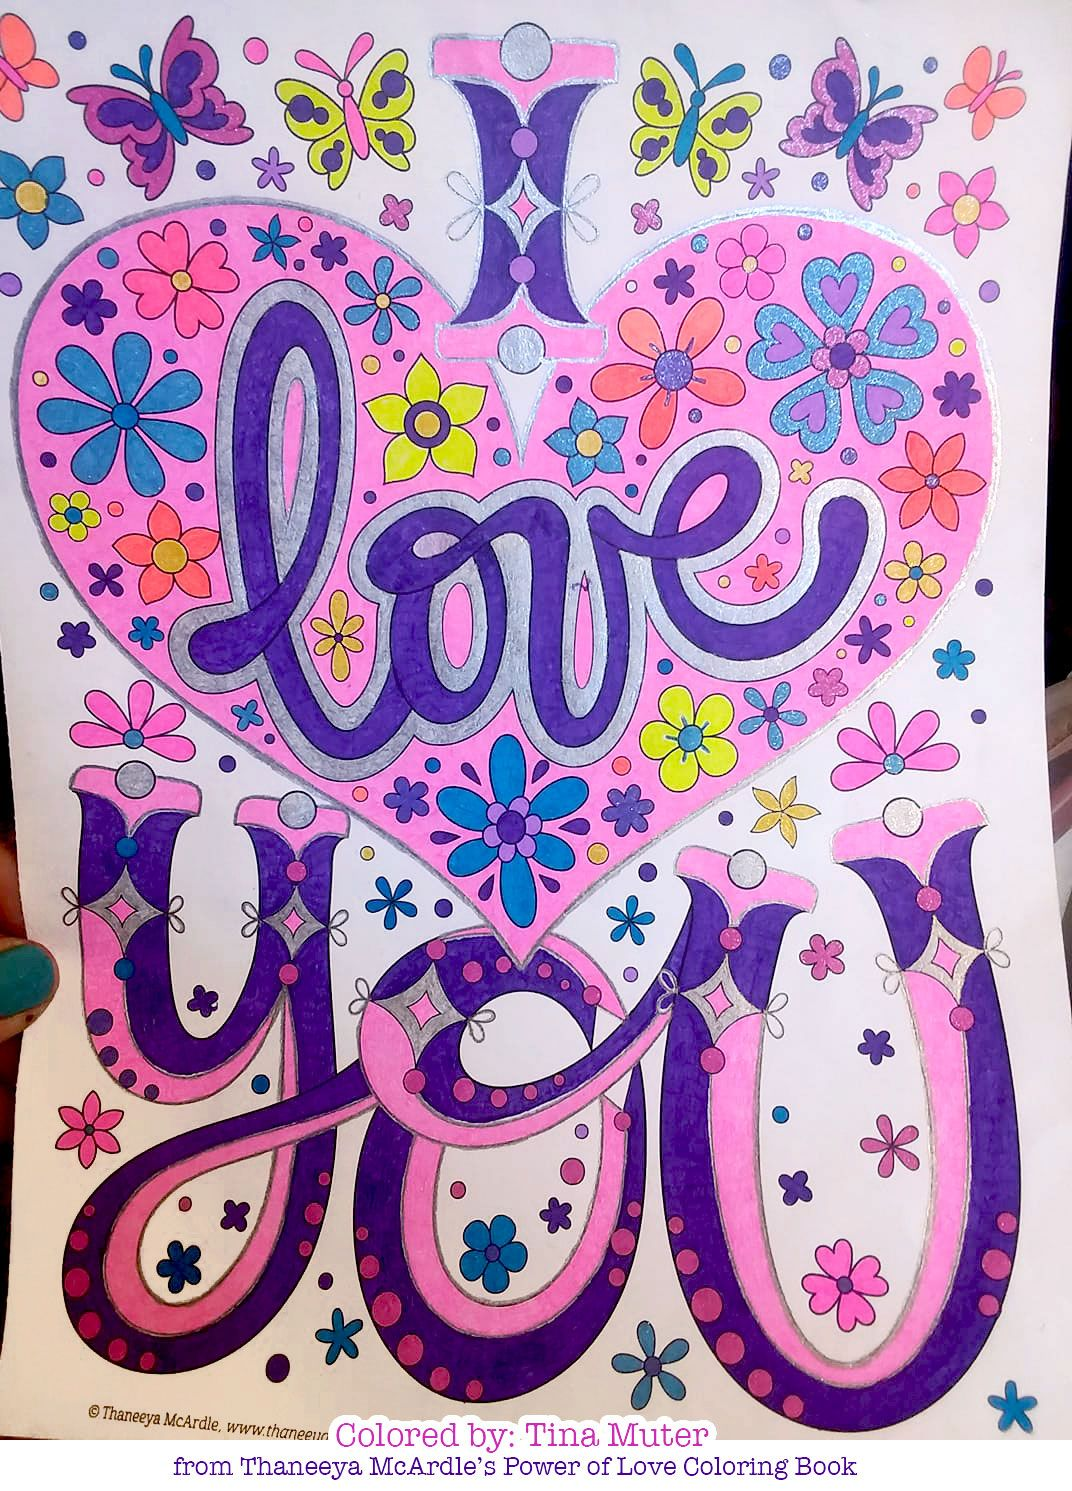 I Love You Coloring Page From Thaneeya Mcardle S Power Of Love